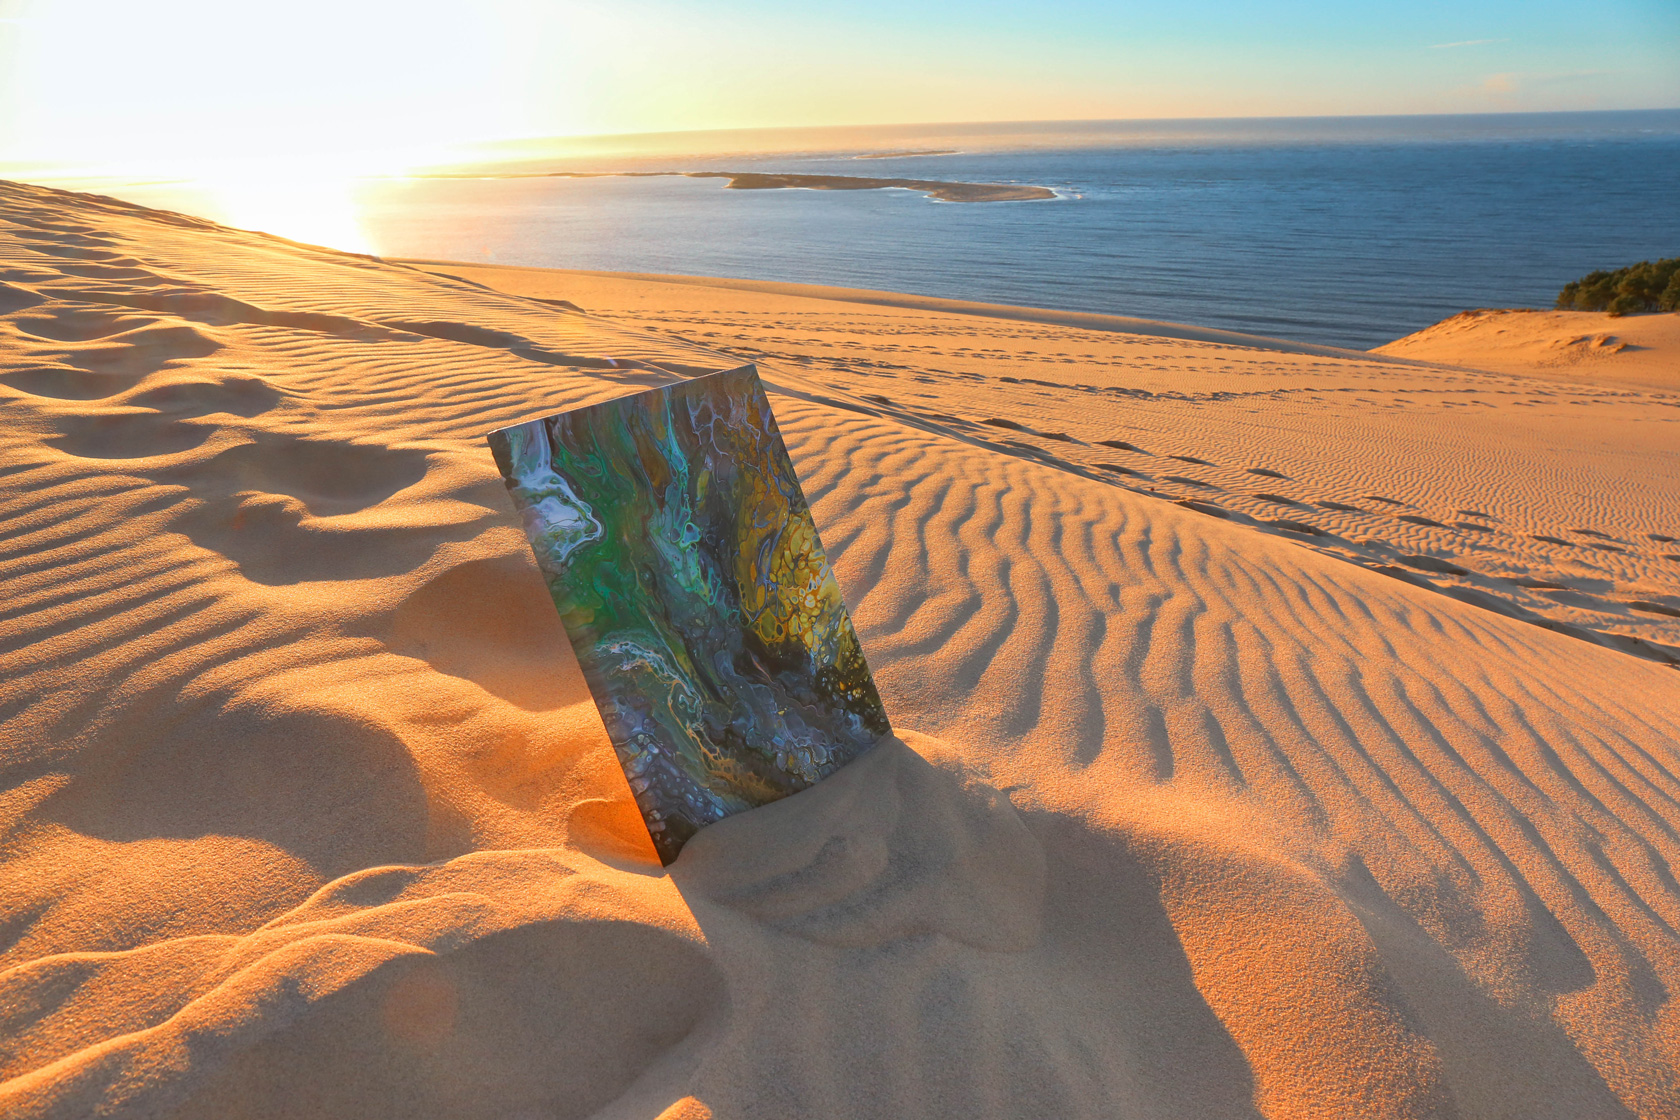 Dune de pyla, pouring art by twopartsofone